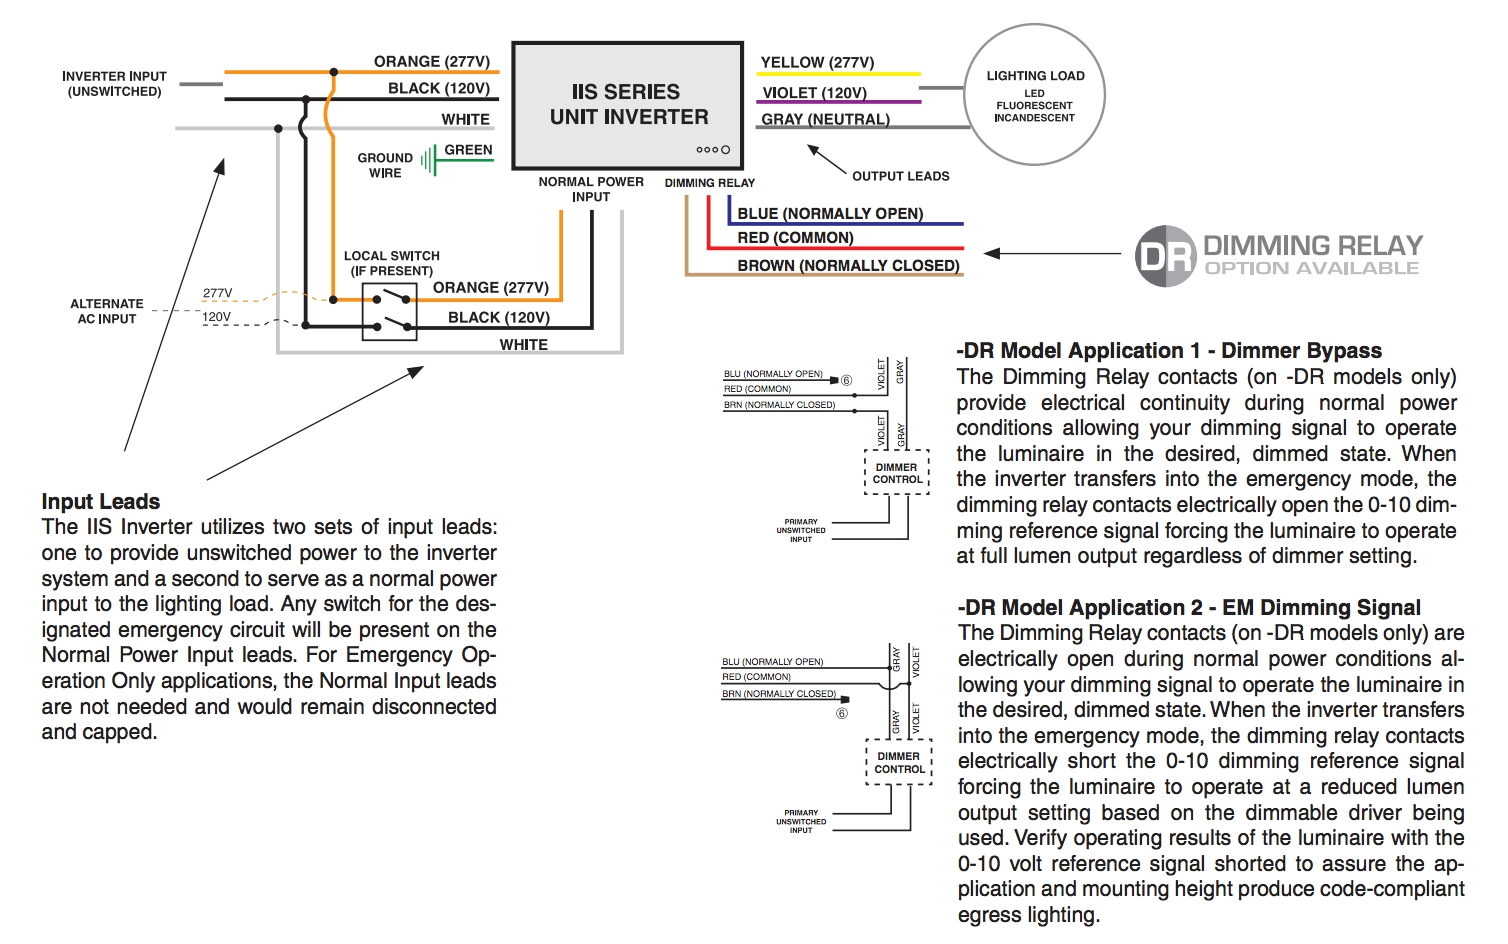 iota emergency ballast wiring diagram Collection-Iota I 24 Emergency Ballast Wiring Diagram 4-p